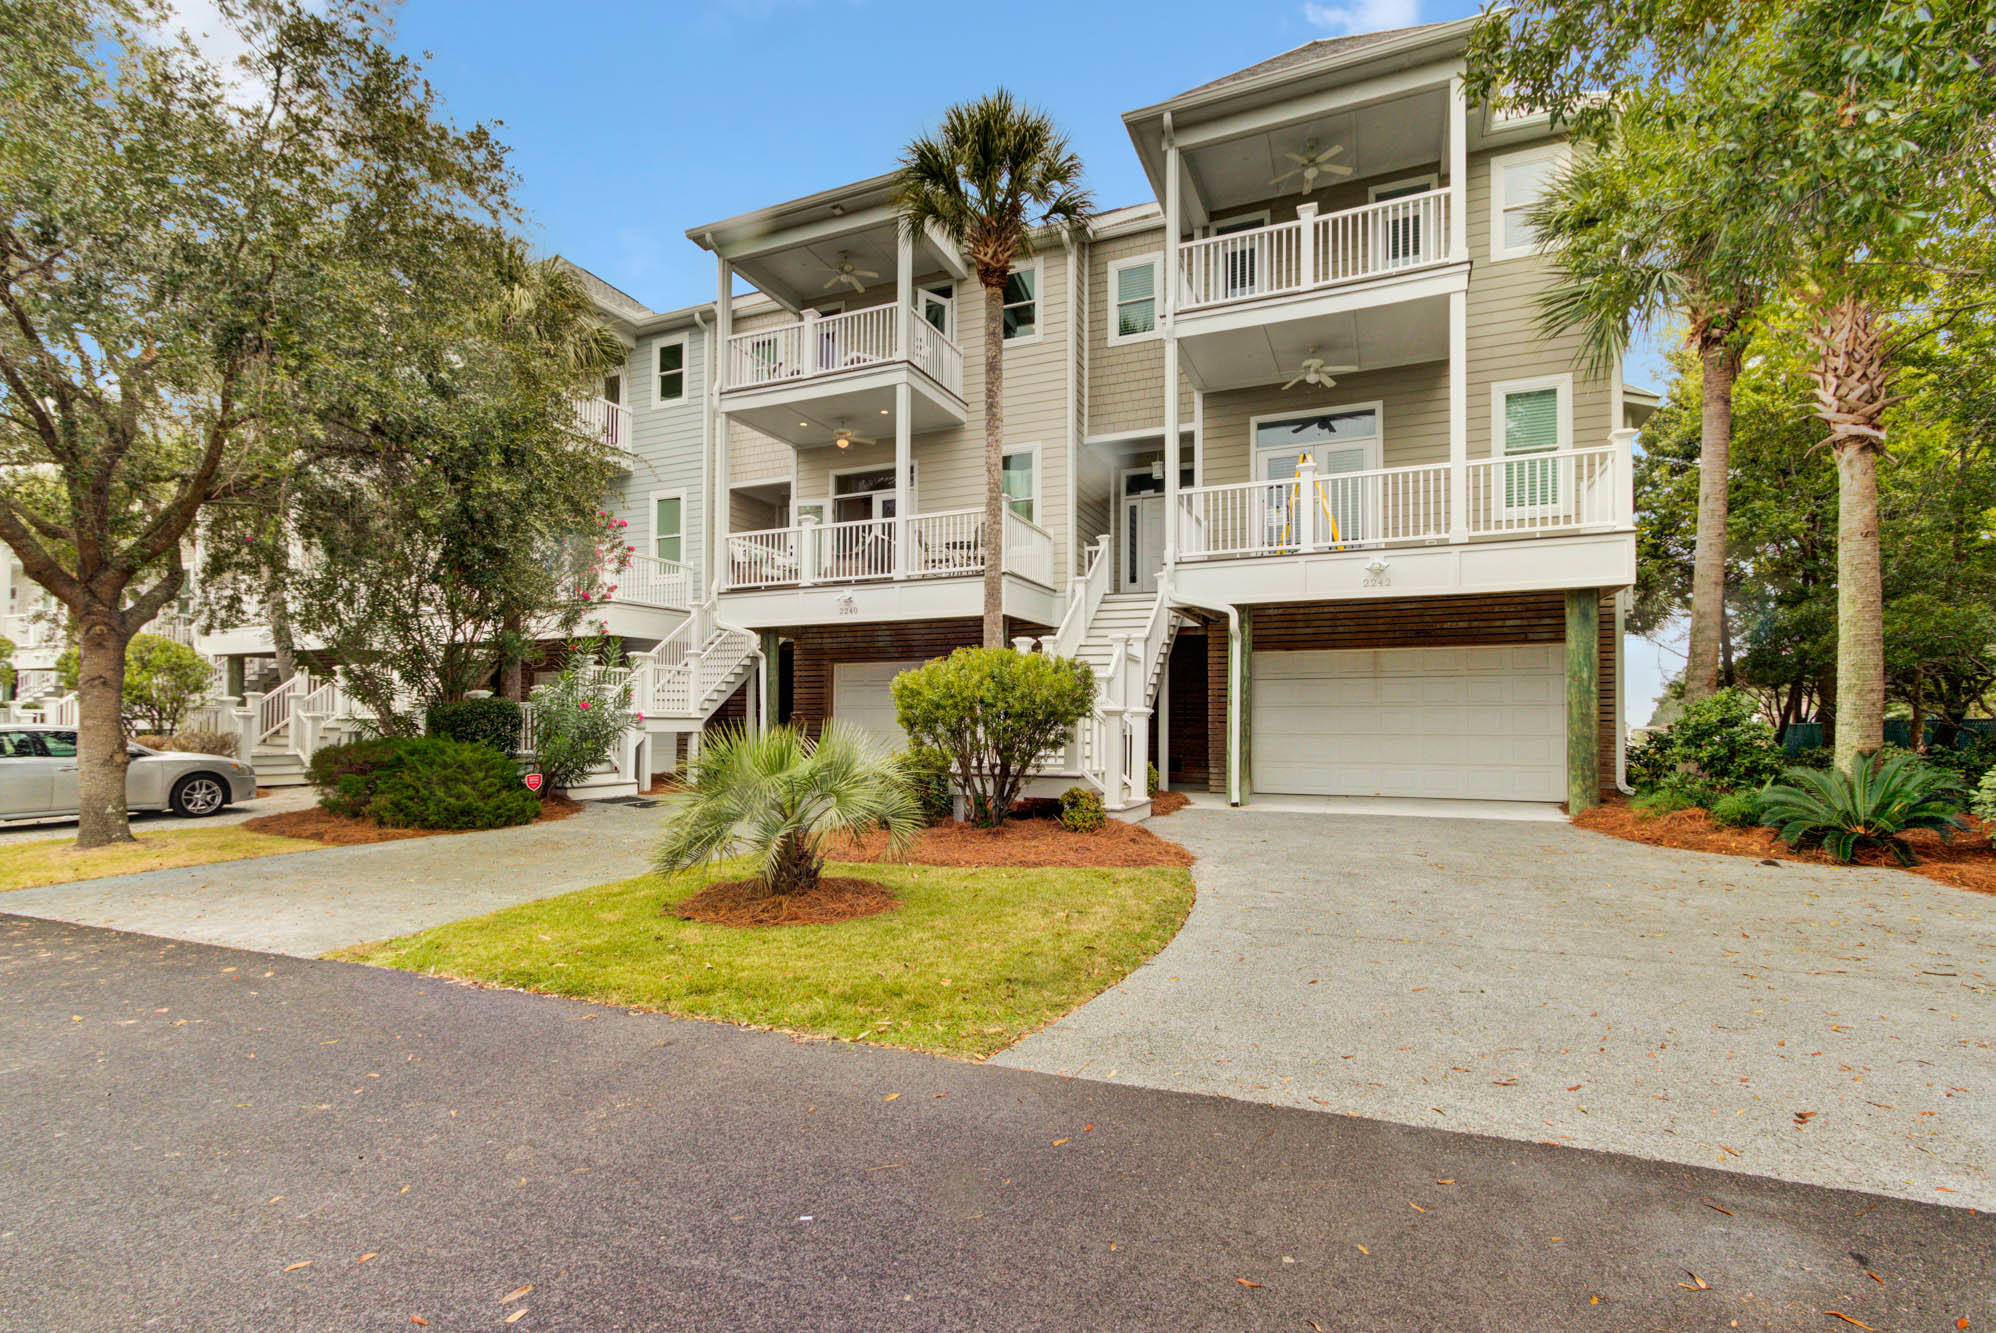 Folly Creek Place Homes For Sale - 2240 Folly, Folly Beach, SC - 37